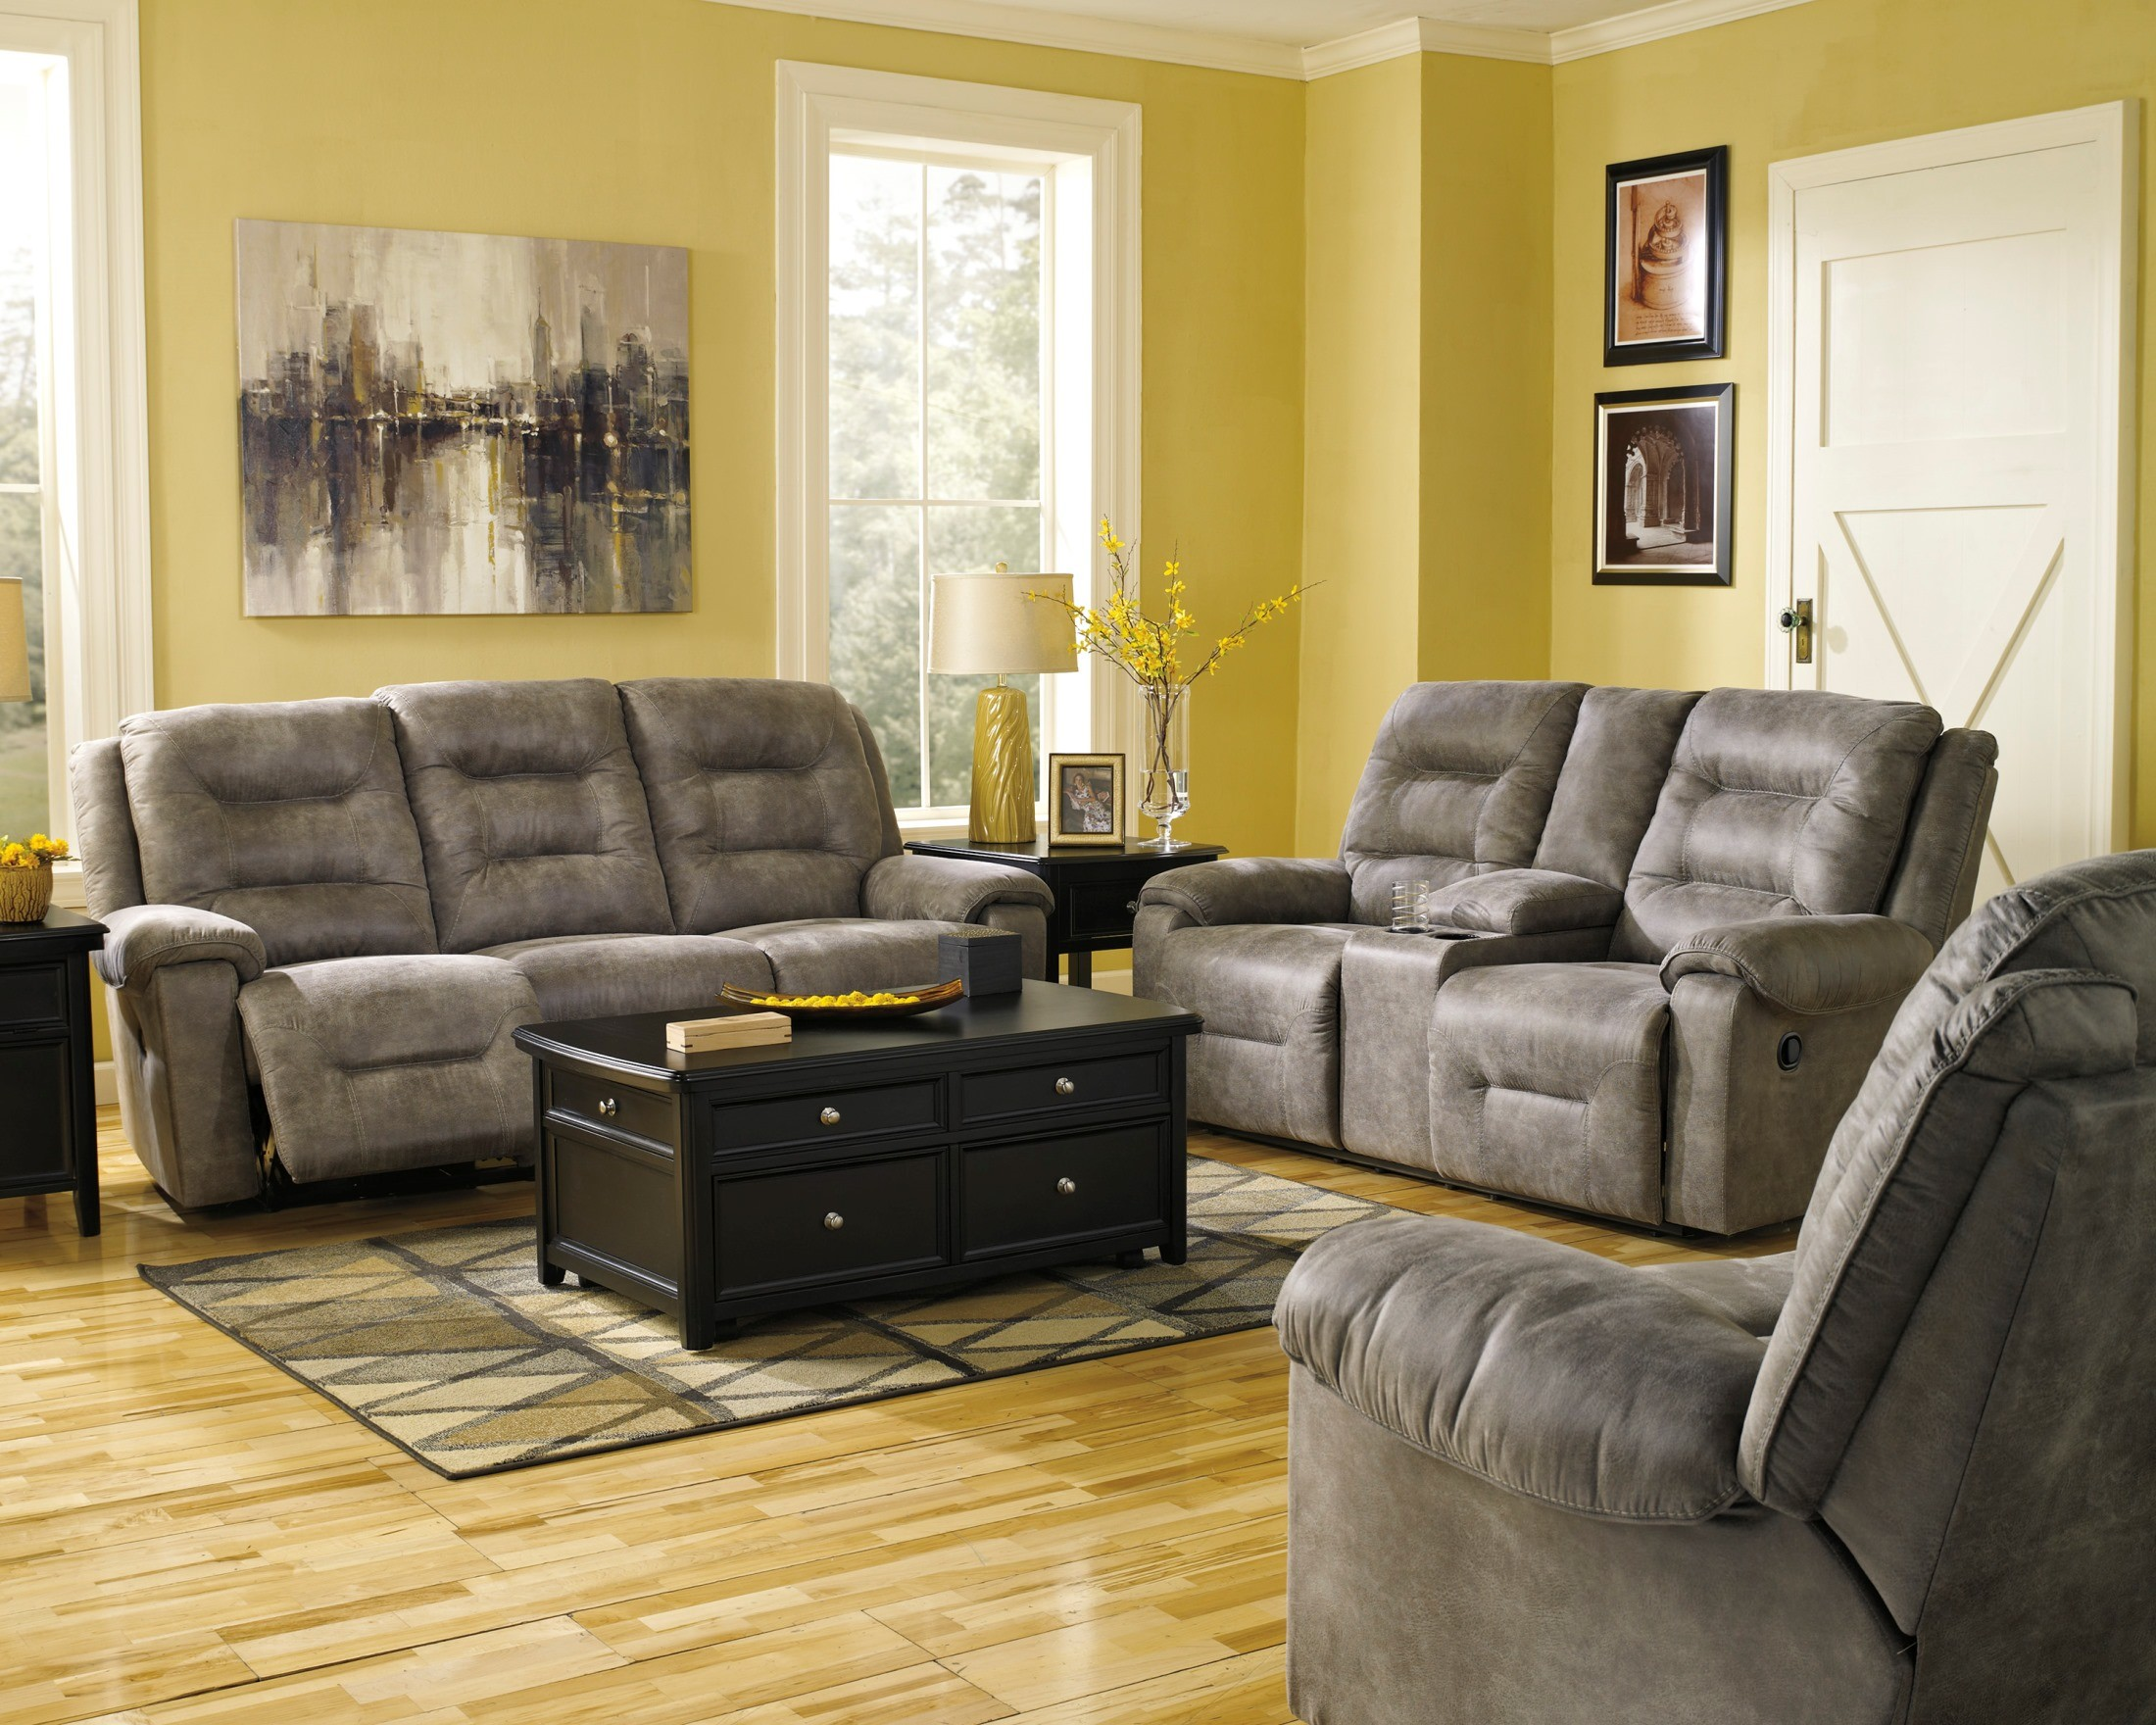 reclining living room furniture sets. Rotation Smoke Reclining Living Room Set From Ashley (97501-88-94) |  Coleman Furniture Reclining Living Room Furniture Sets E